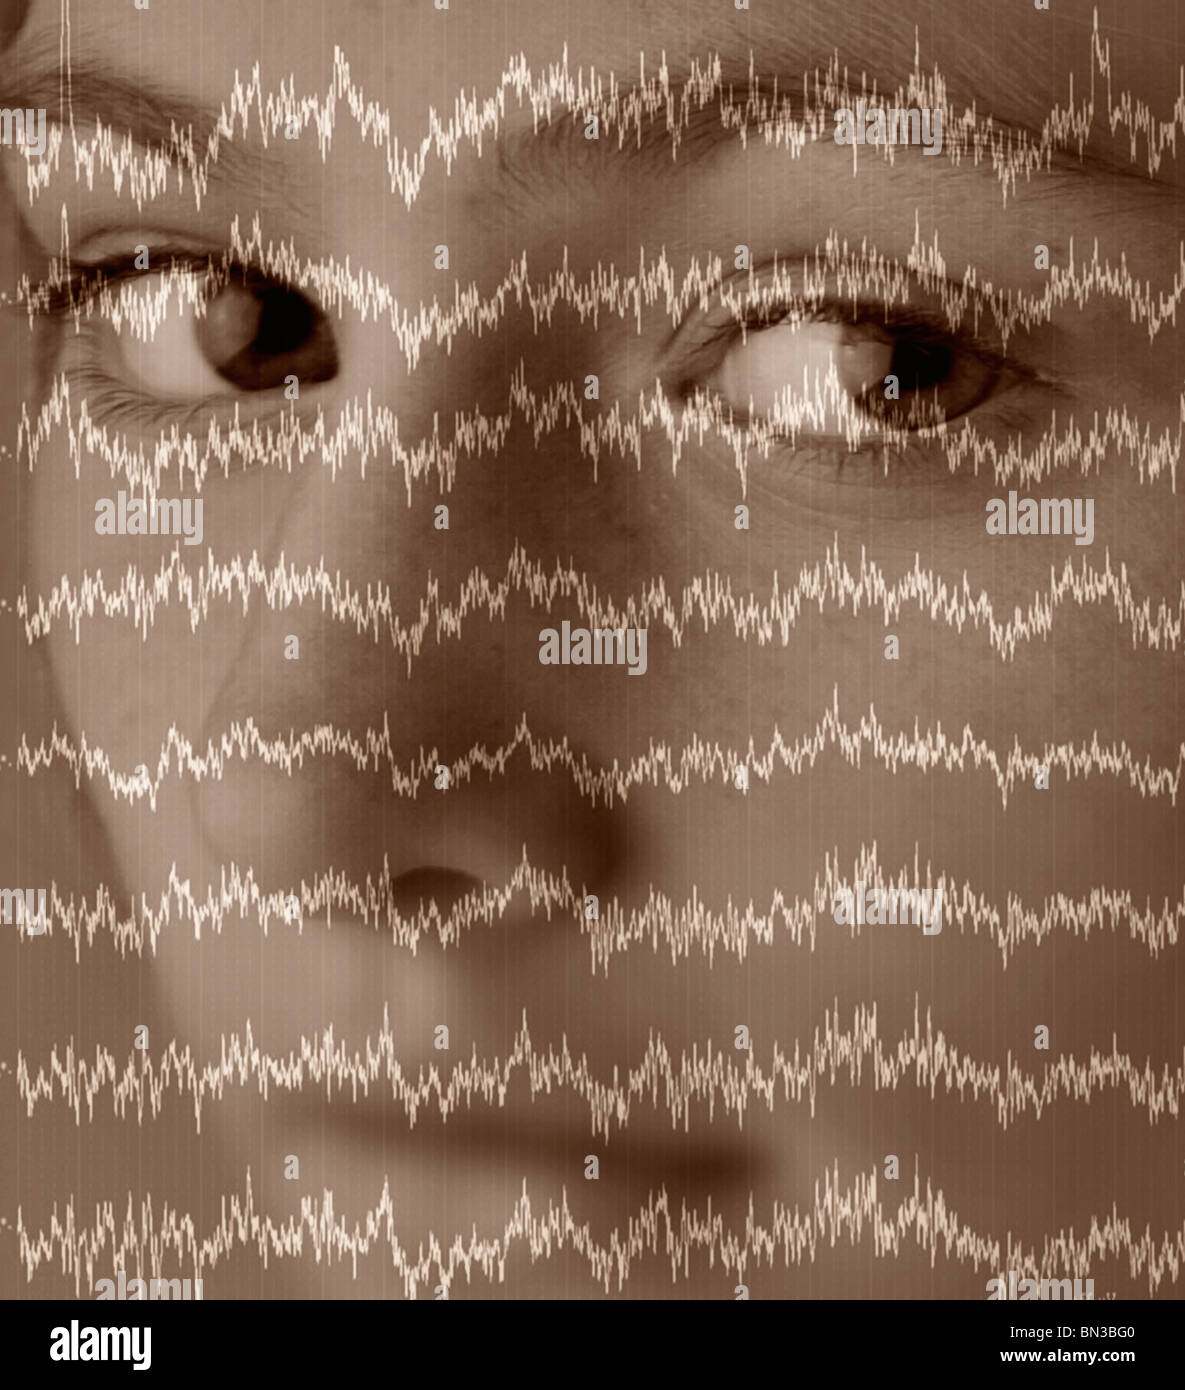 An electroencephalogram of normal human brain waves superimposed over a photograph of a girl - Stock Image